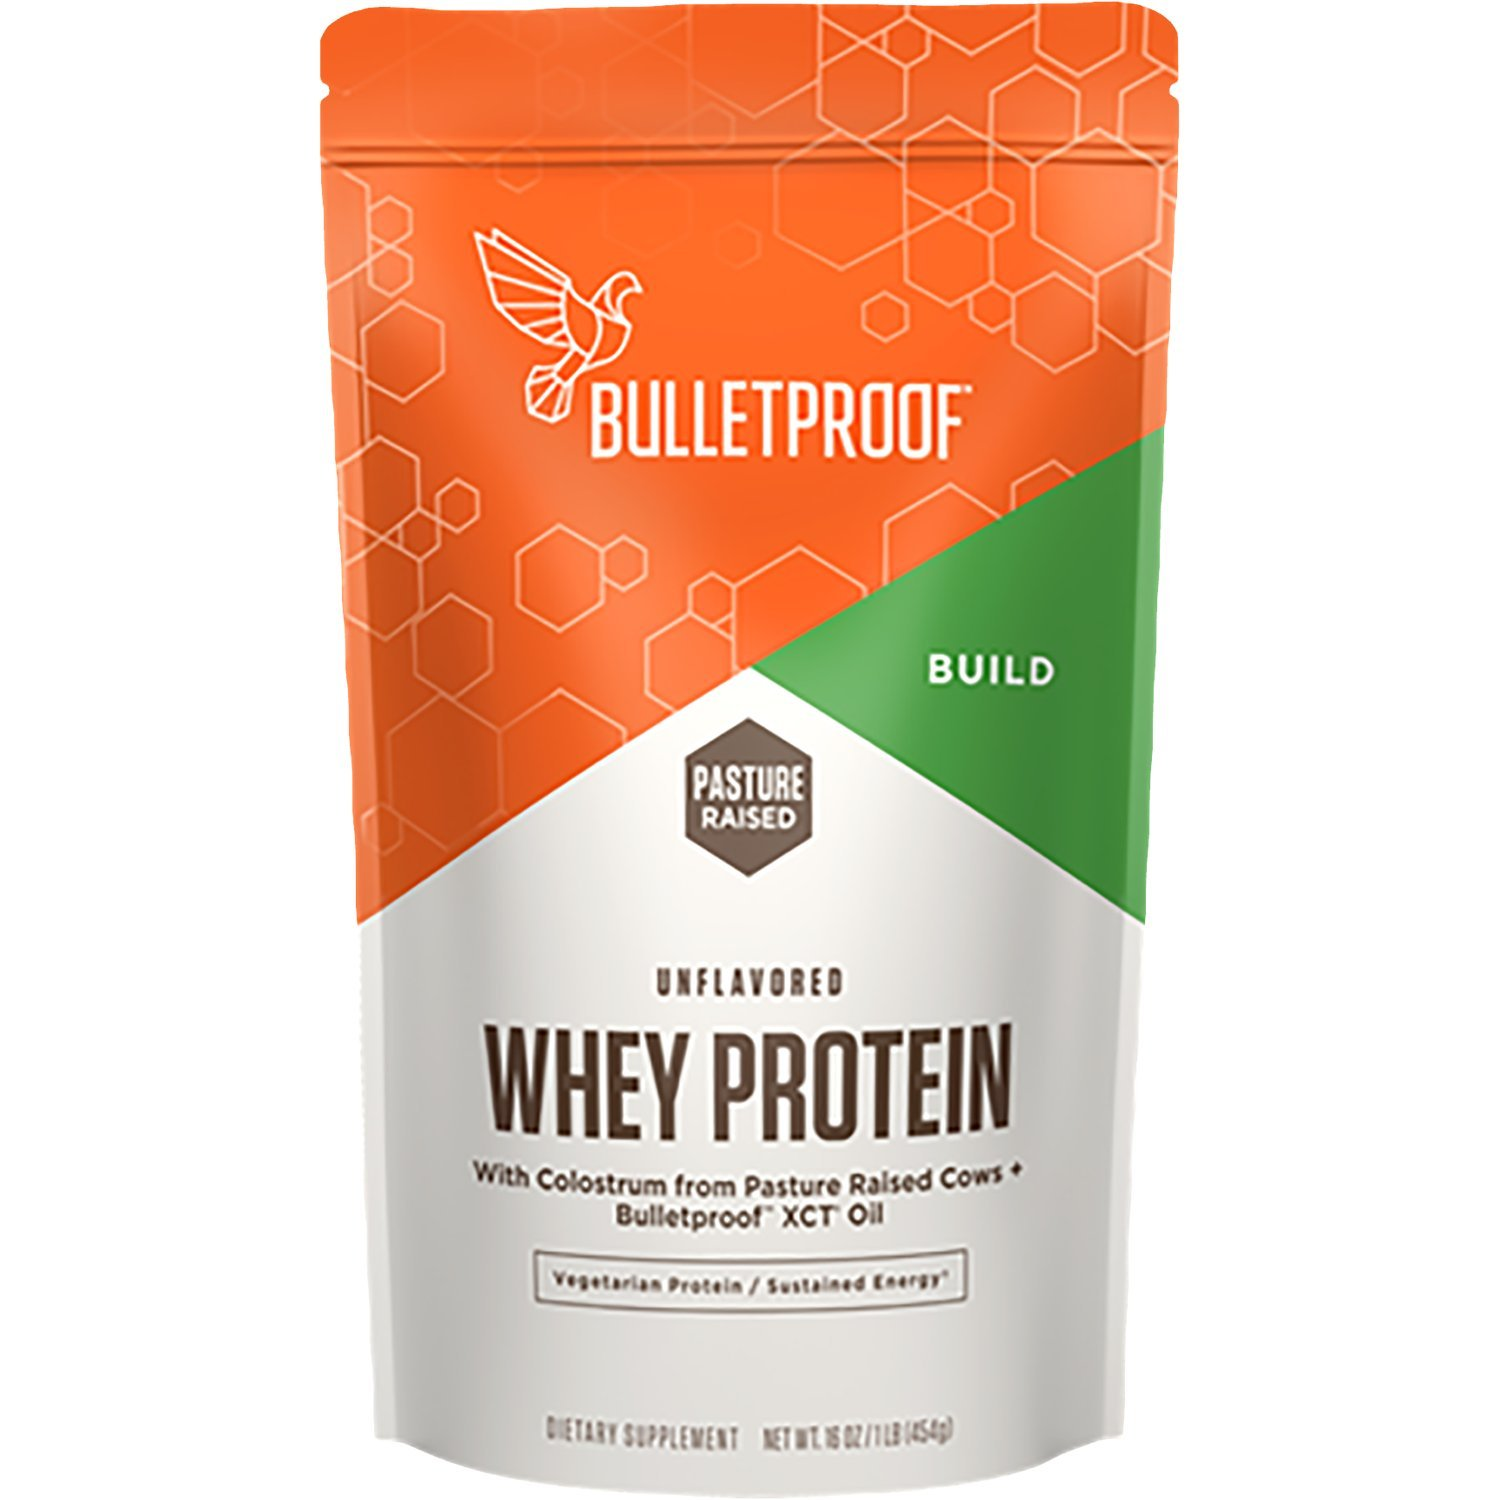 Bulletproof Whey Protein, Helps to Promote Energy All Through the Day (16 Ounces)